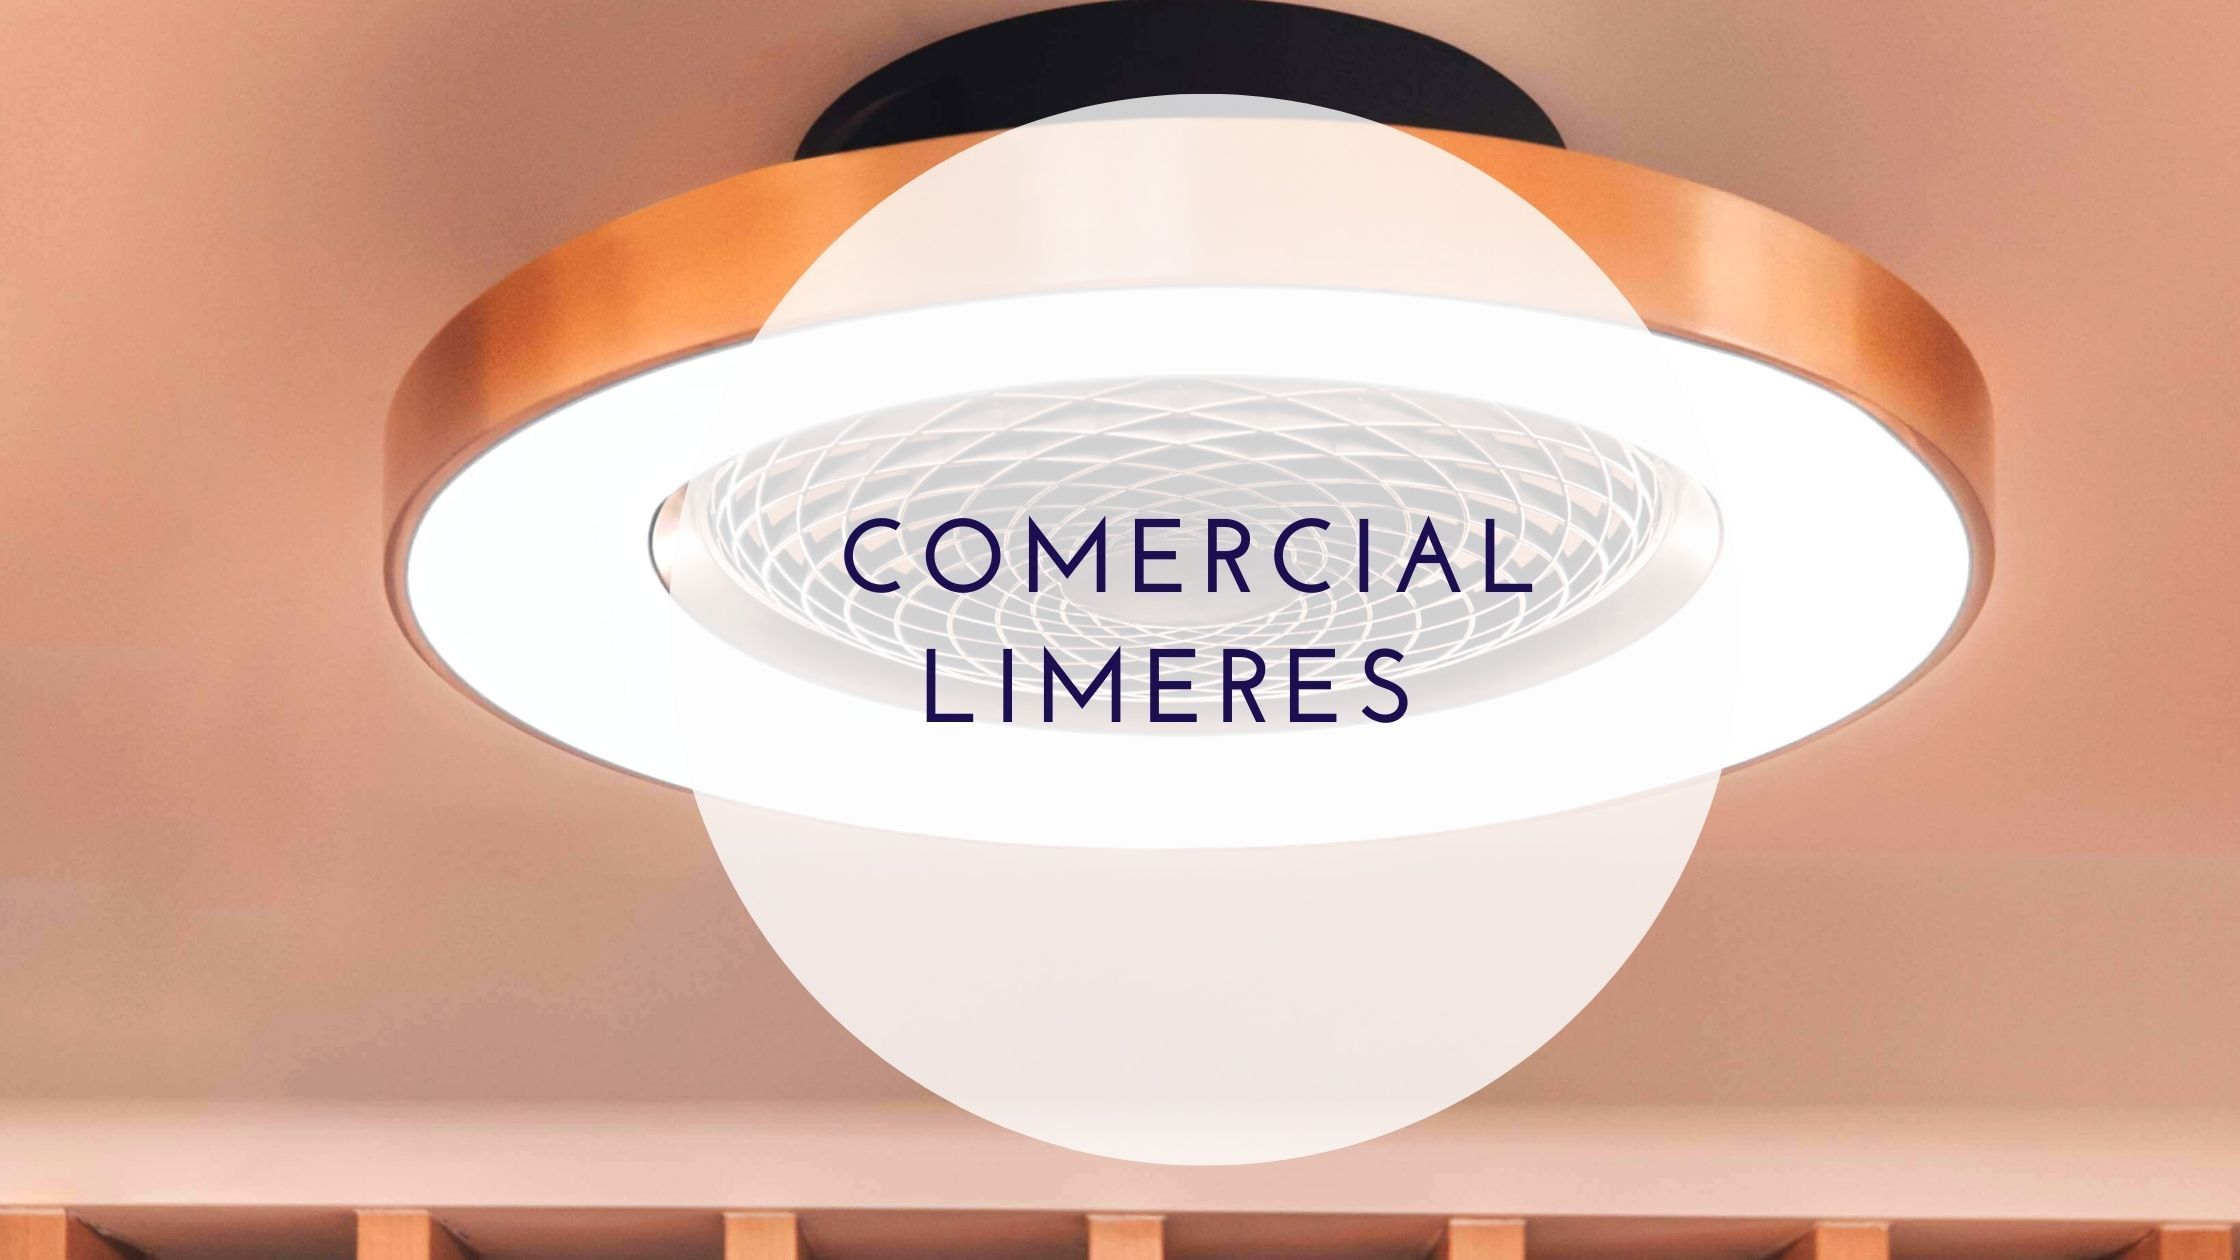 Comercial Limeres